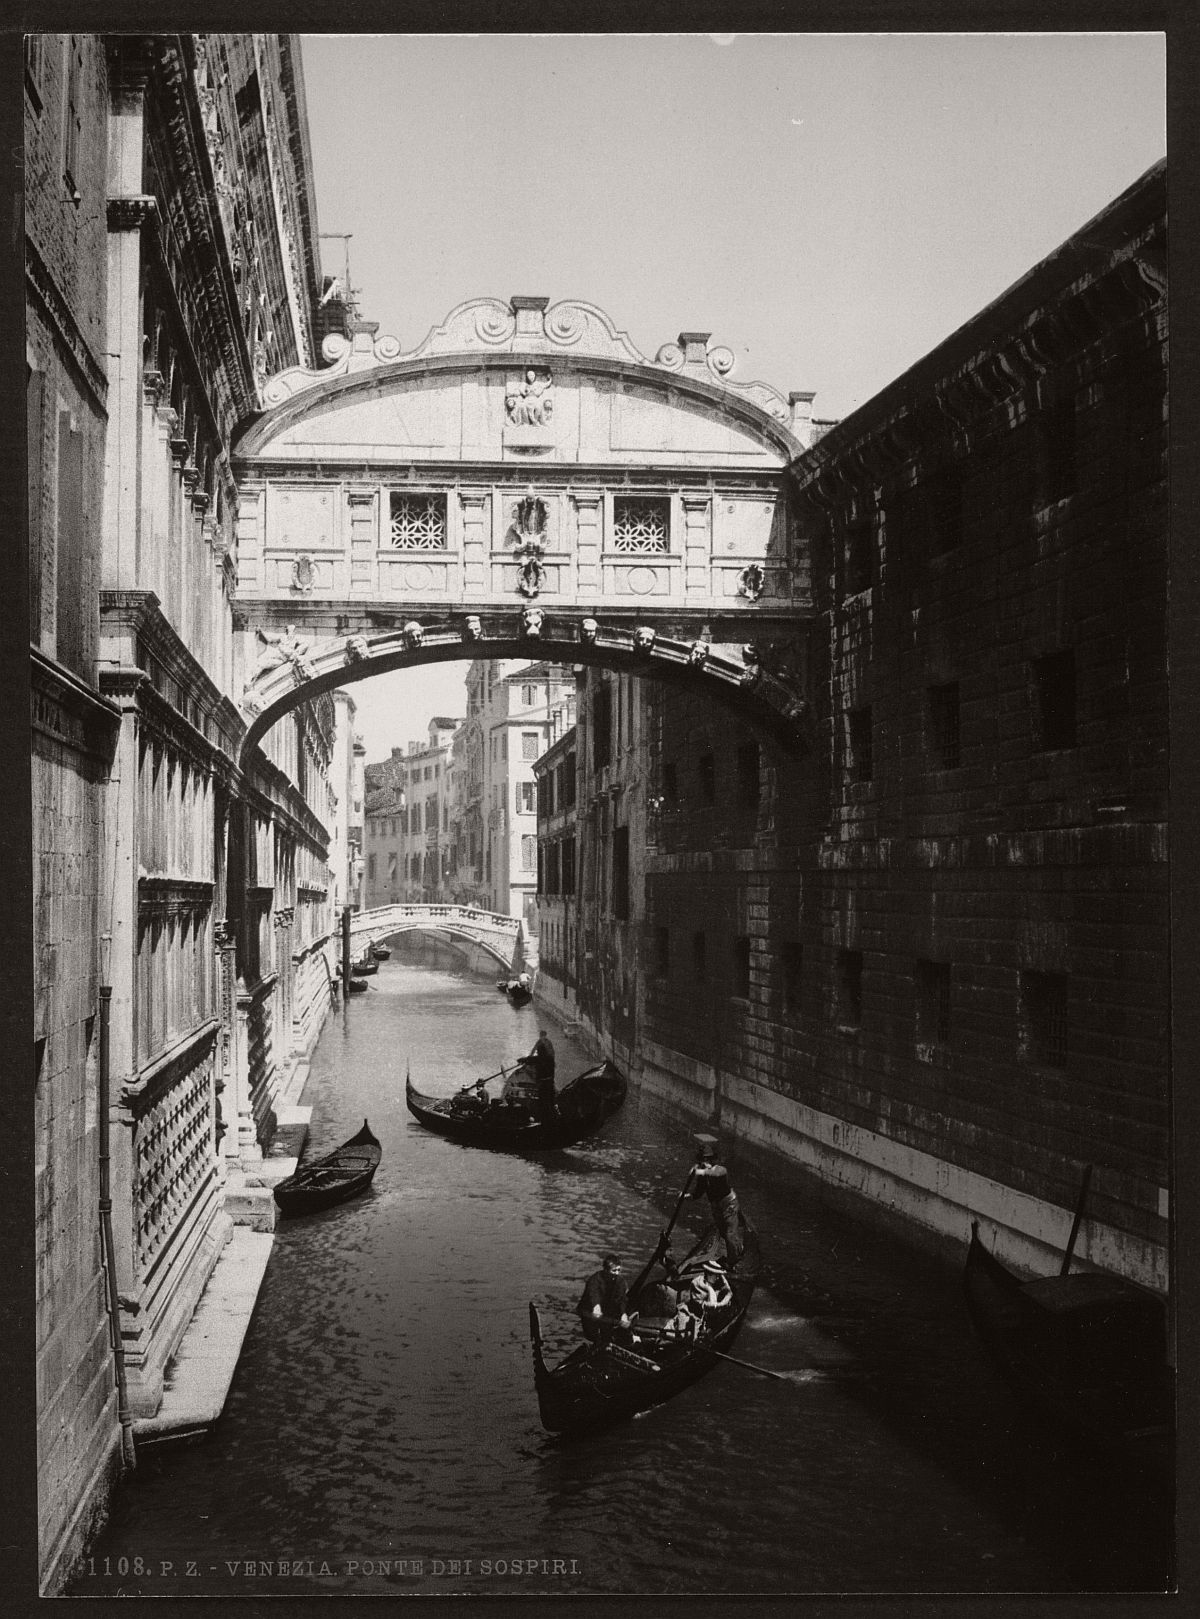 historic-bw-photos-of-venice-italy-in-19th-century-03